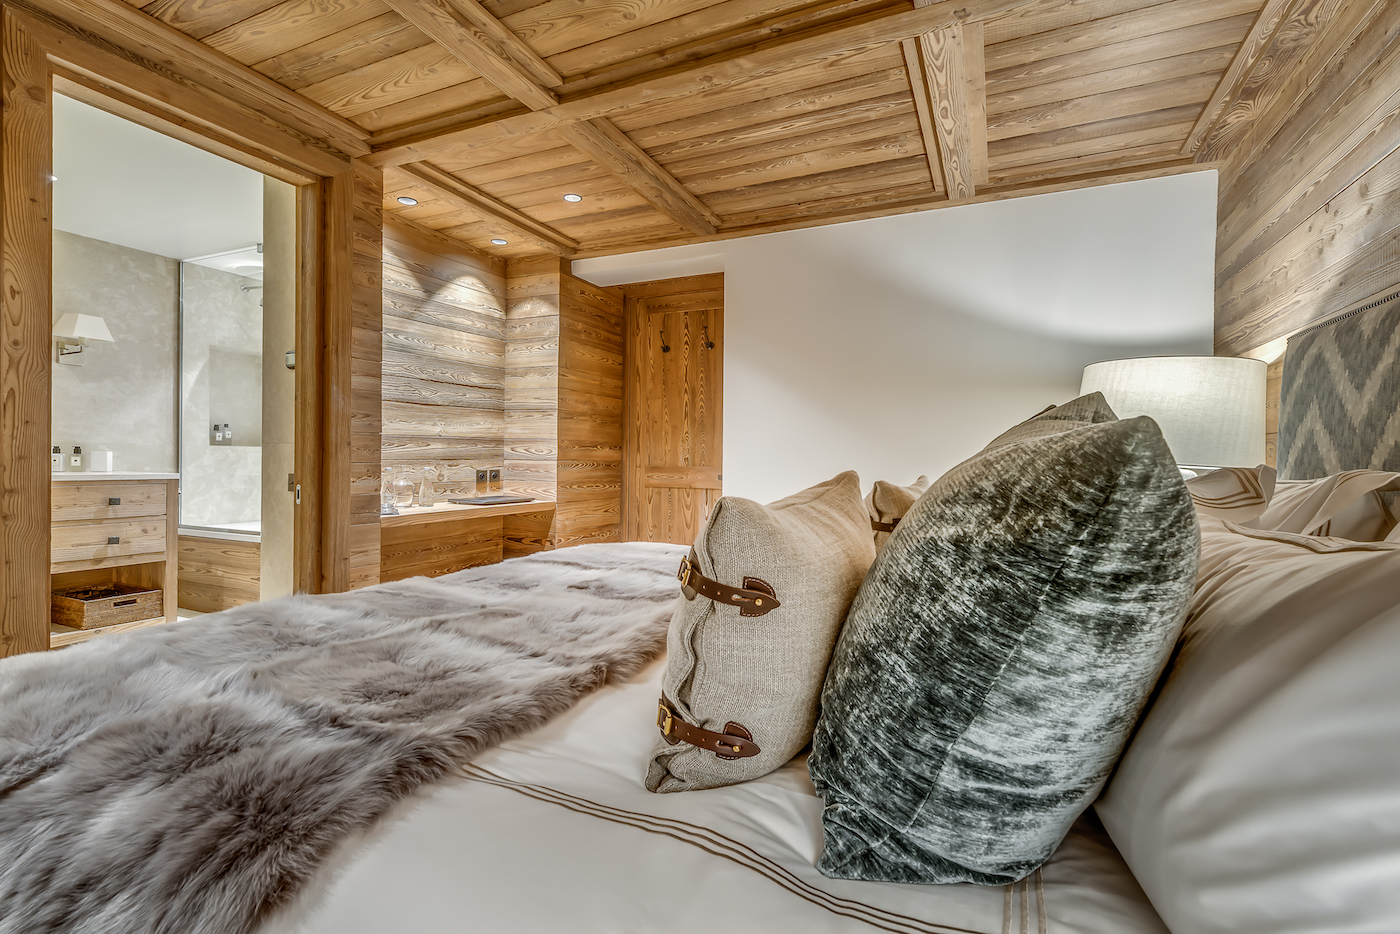 petit-chamois-bedroom-3a